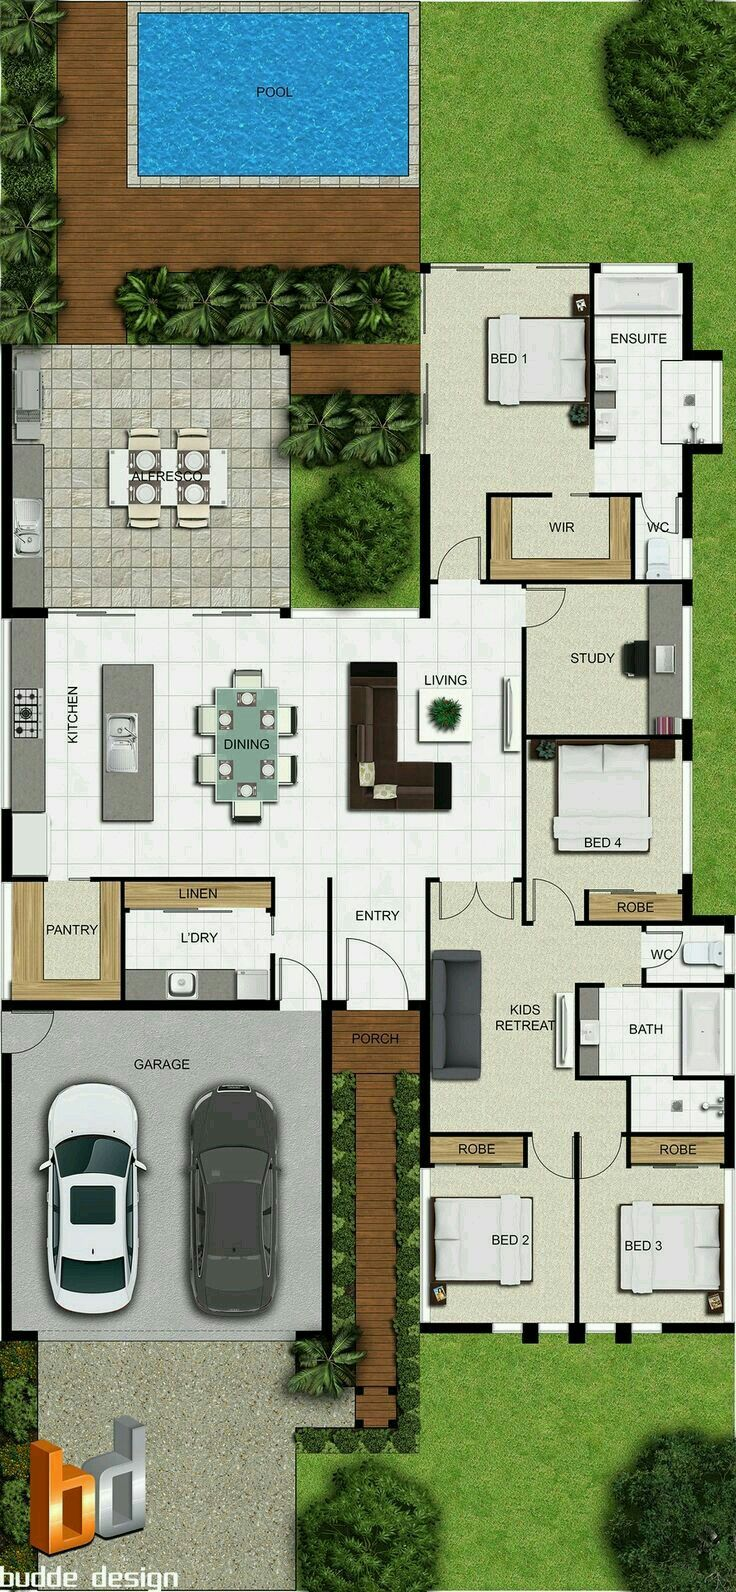 home floor plans color.  specialising in Architectural Visualisation Rendering Artist Impressions floor plans colour Floor Plan illustrations Pin by Shay on sim house ideas Pinterest Layouts House and